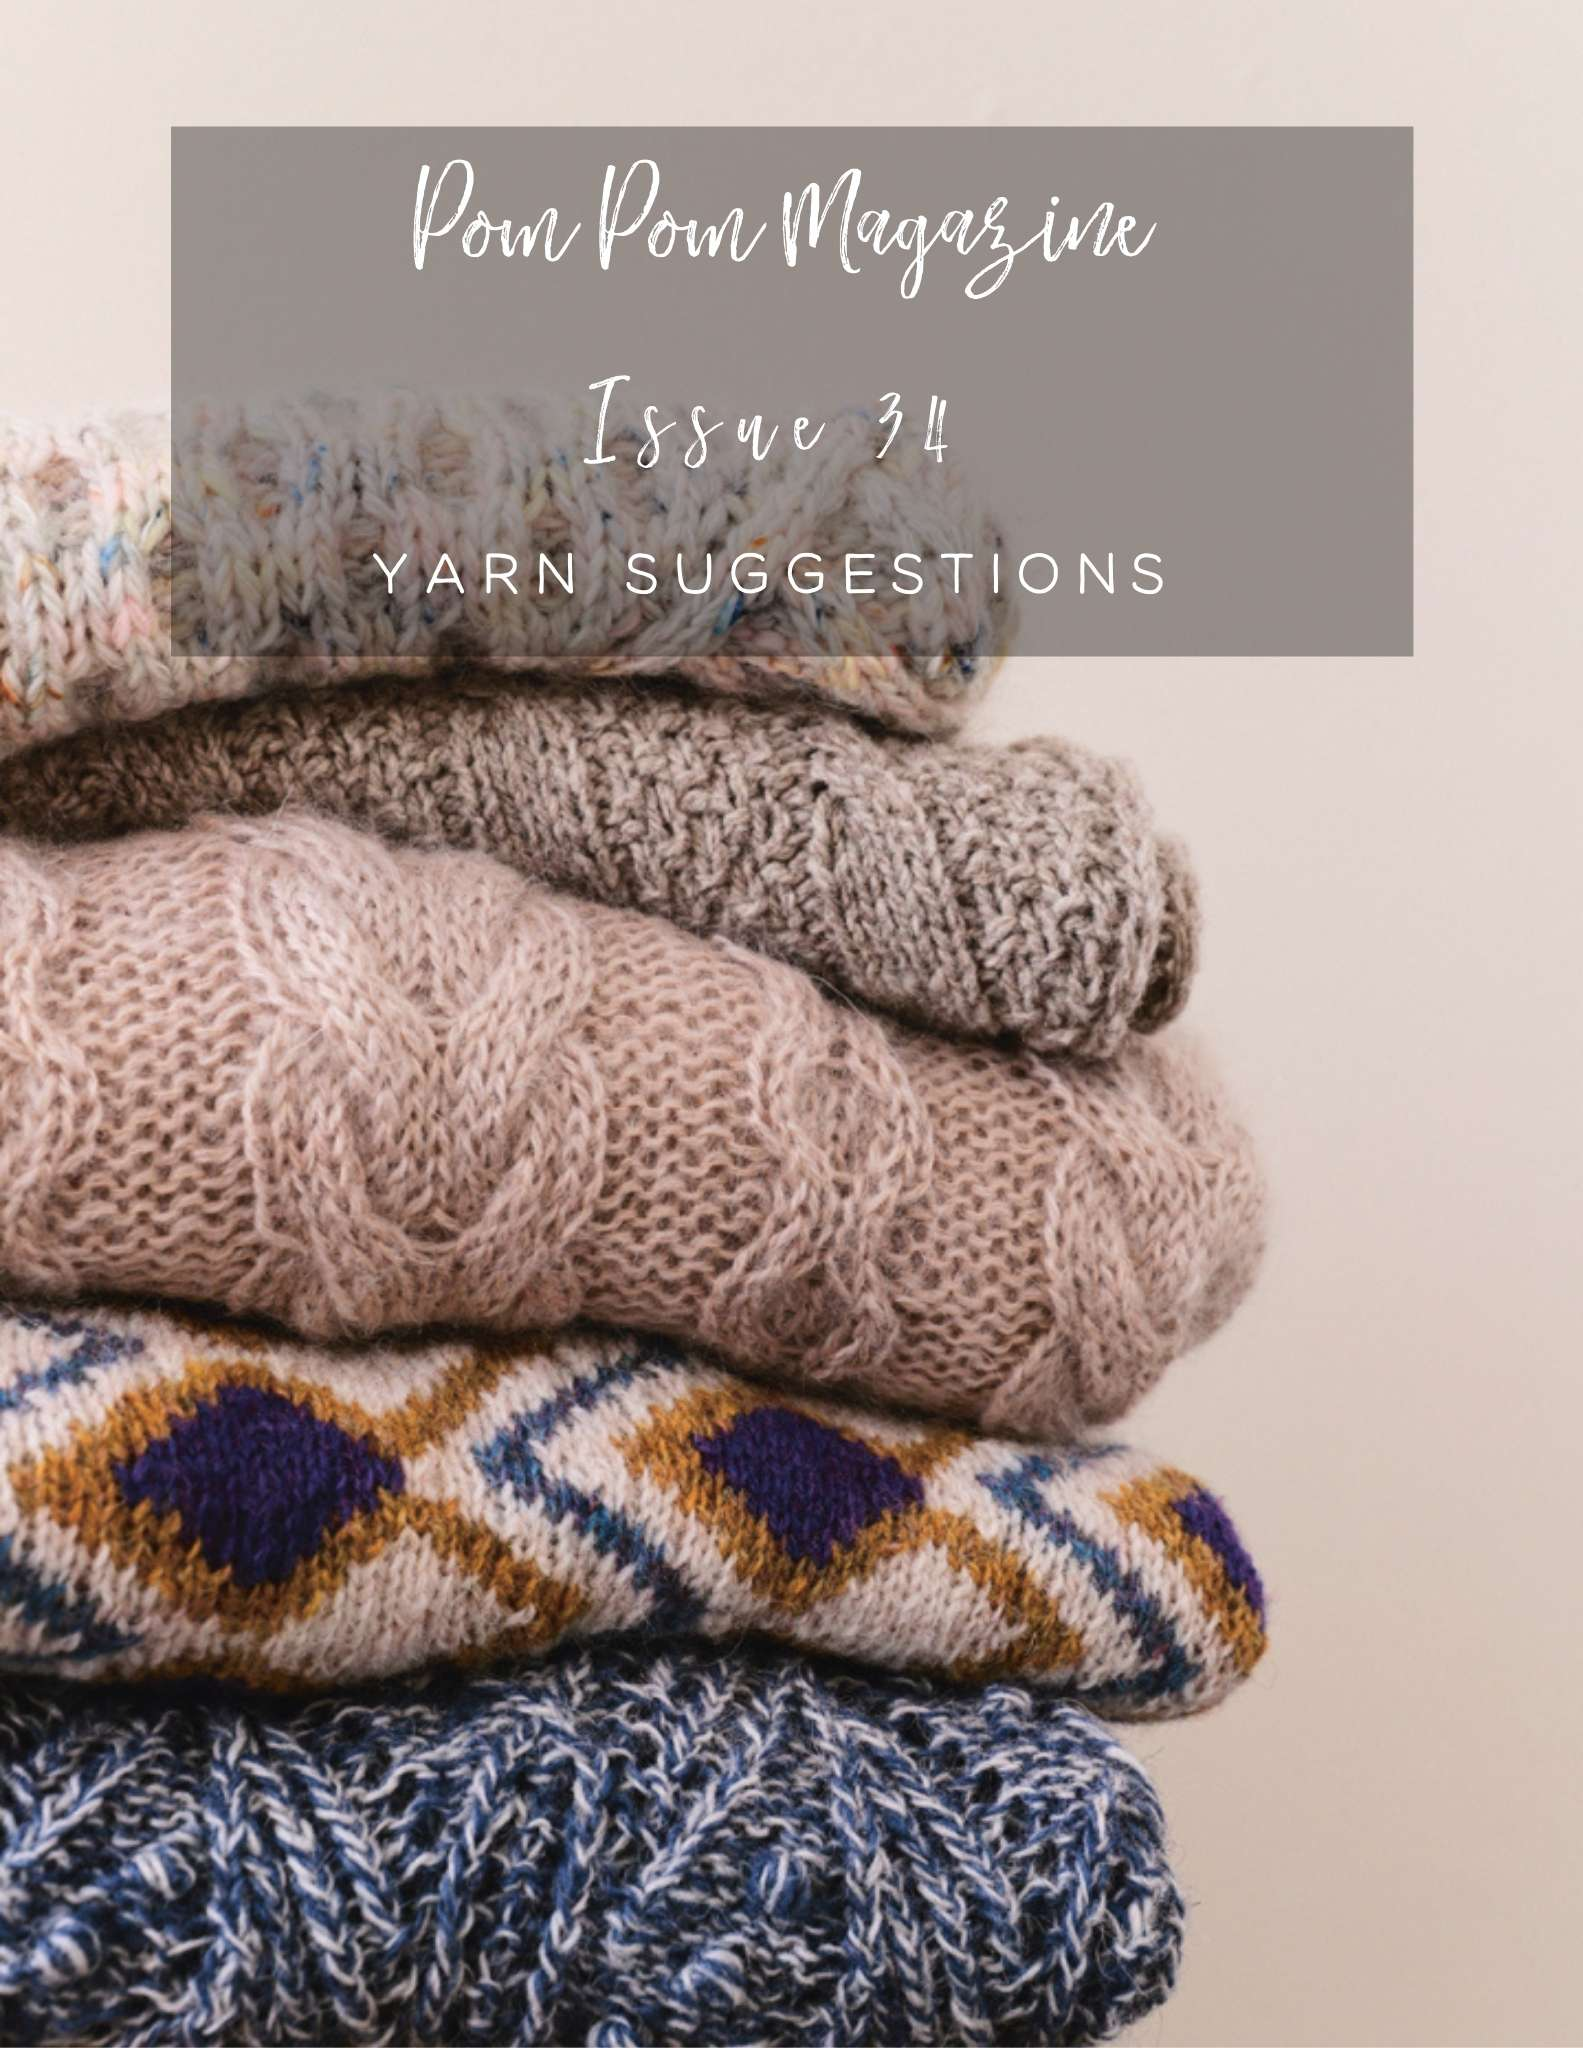 Pom Pom Issue 34 Pre-orders and Some Suggested Yarns